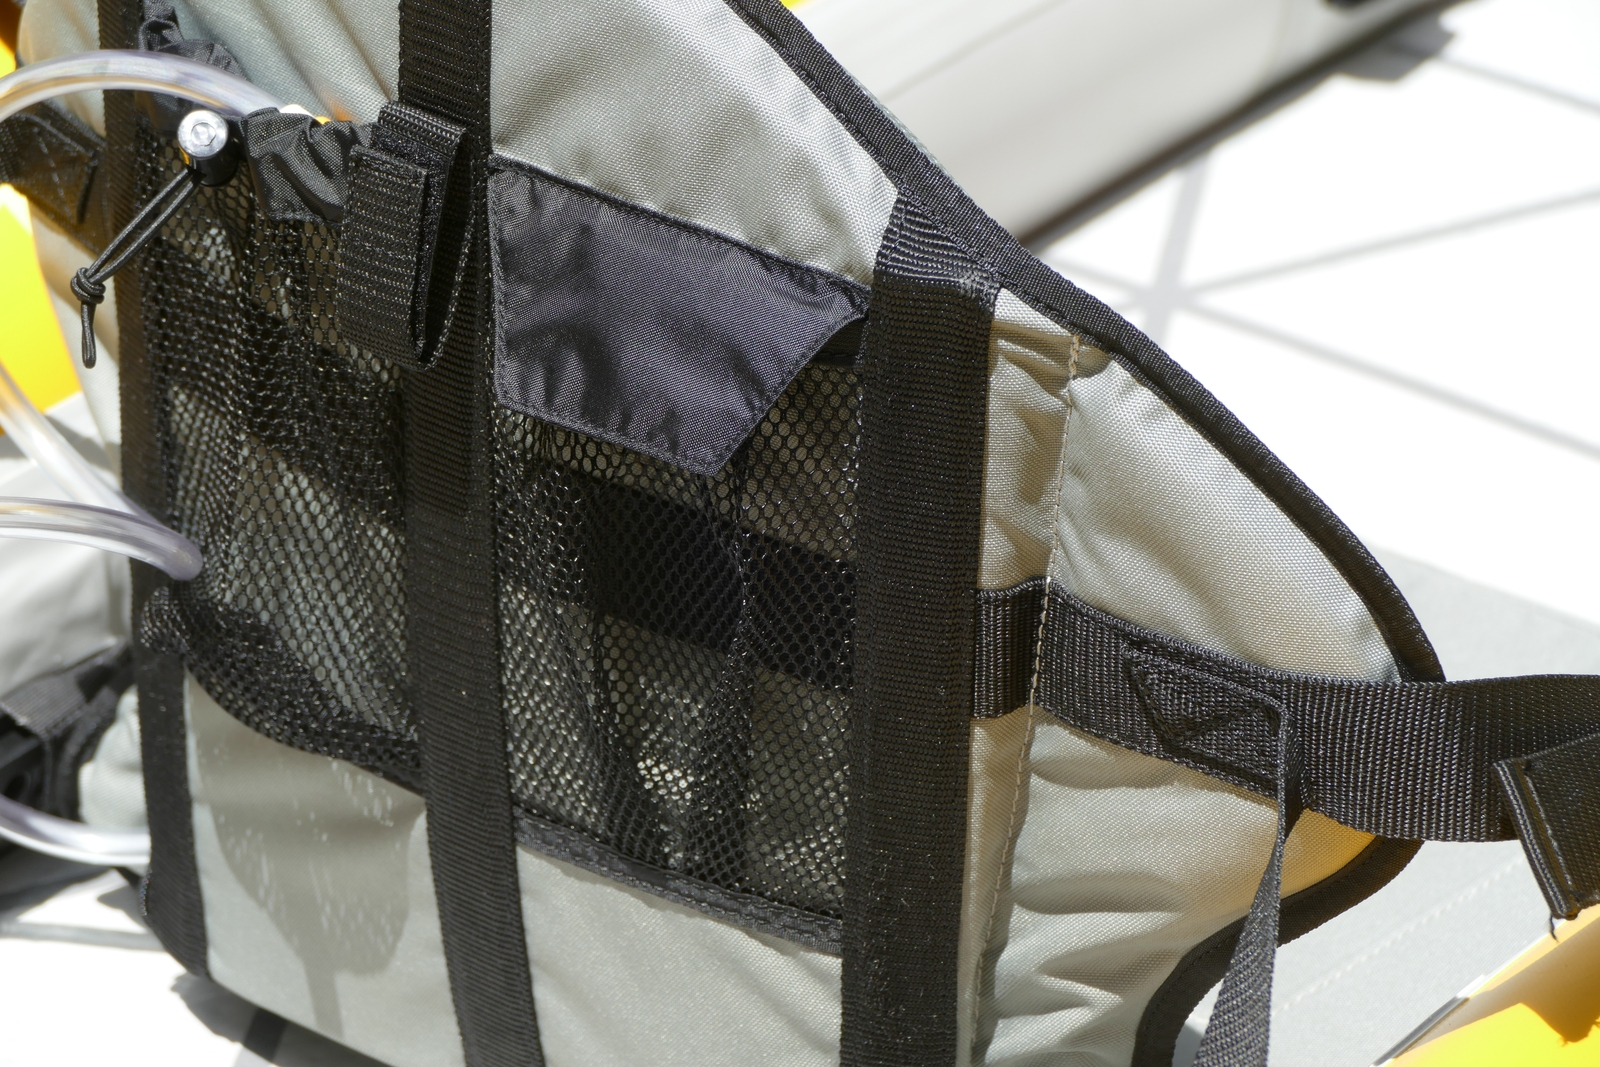 Mesh pockets on back of one seat.